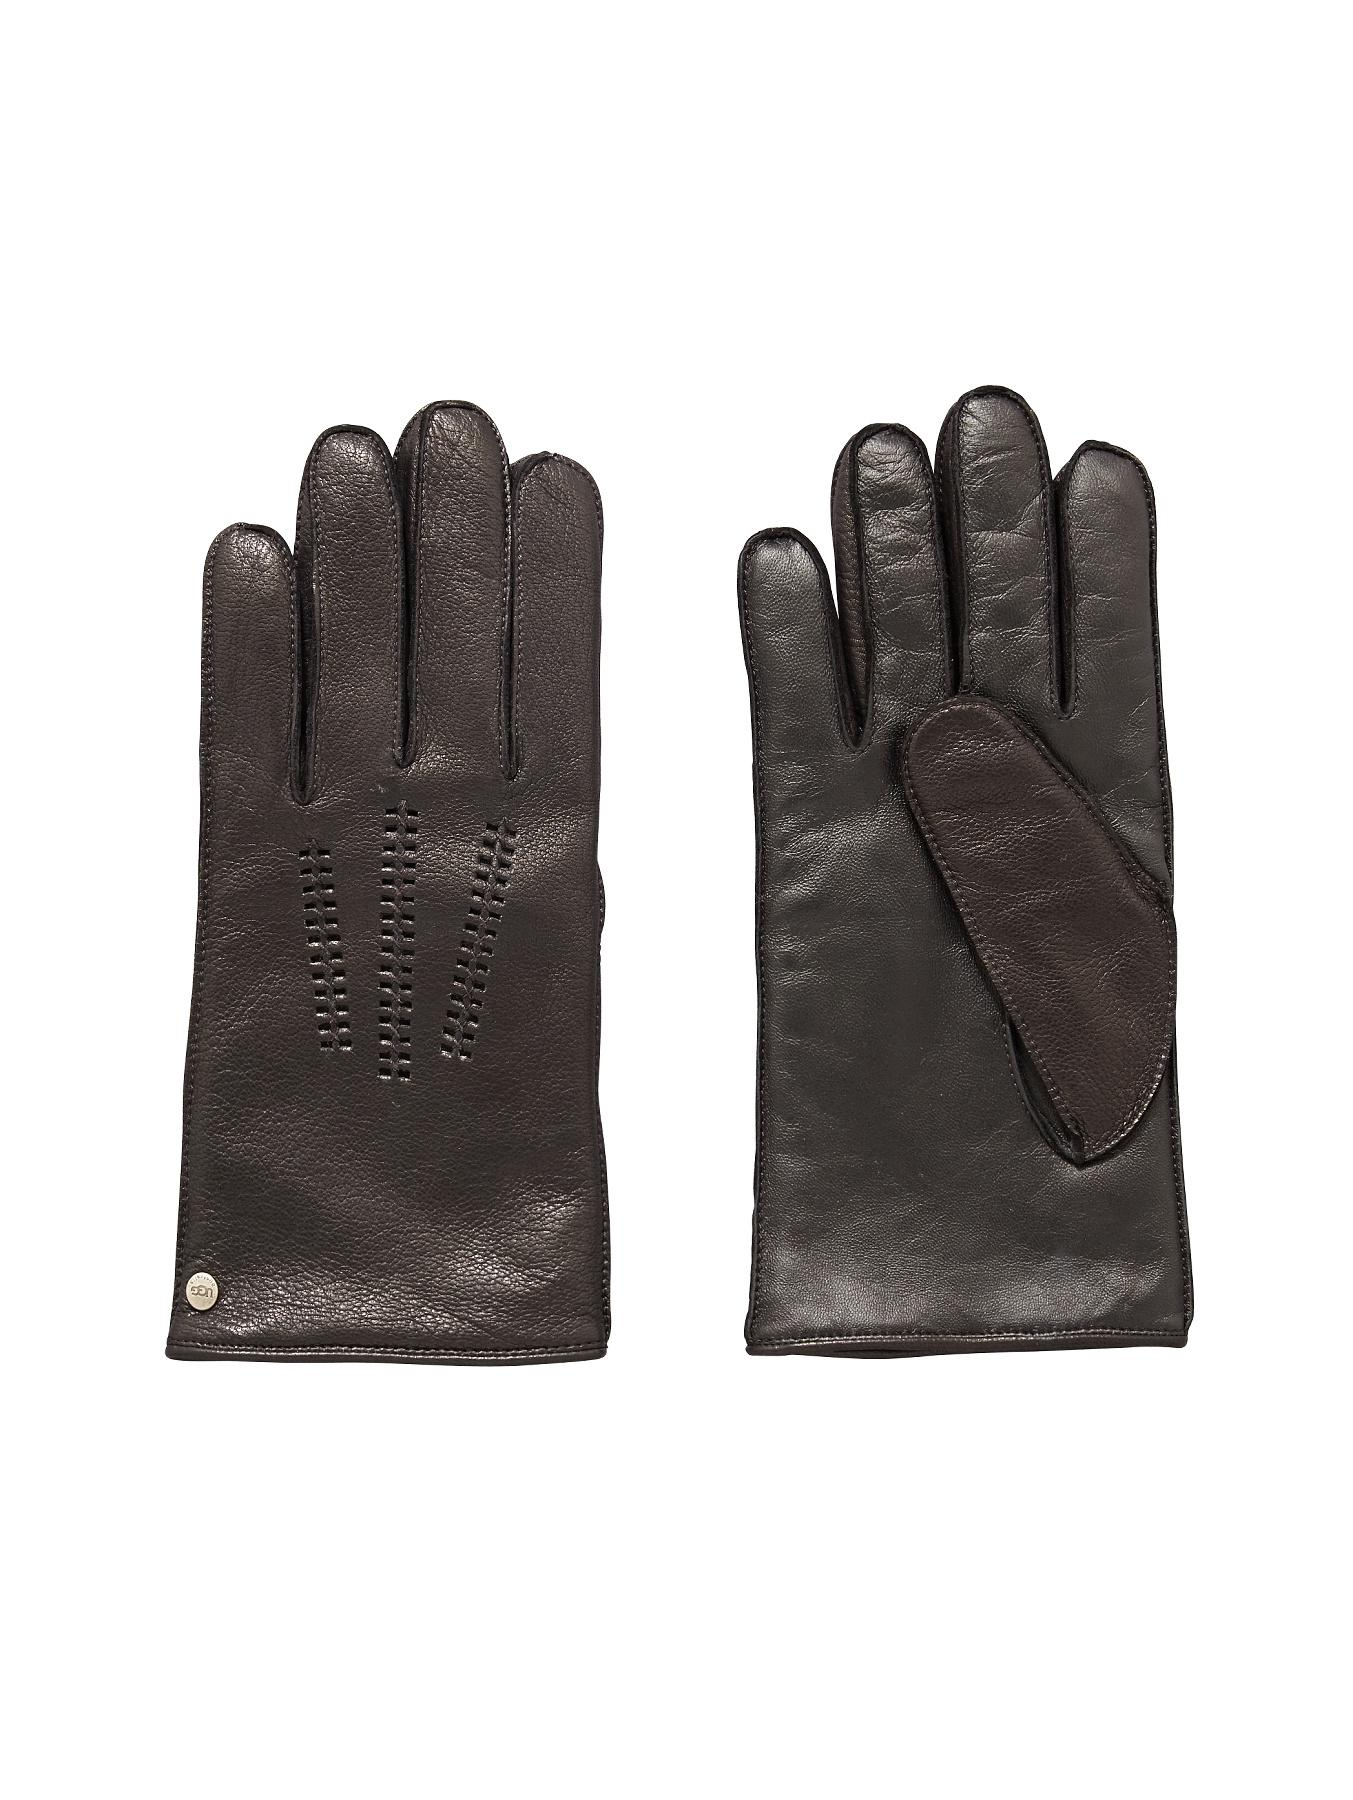 Ugg Australia Classic Leather Smart Gloves - Black, Black